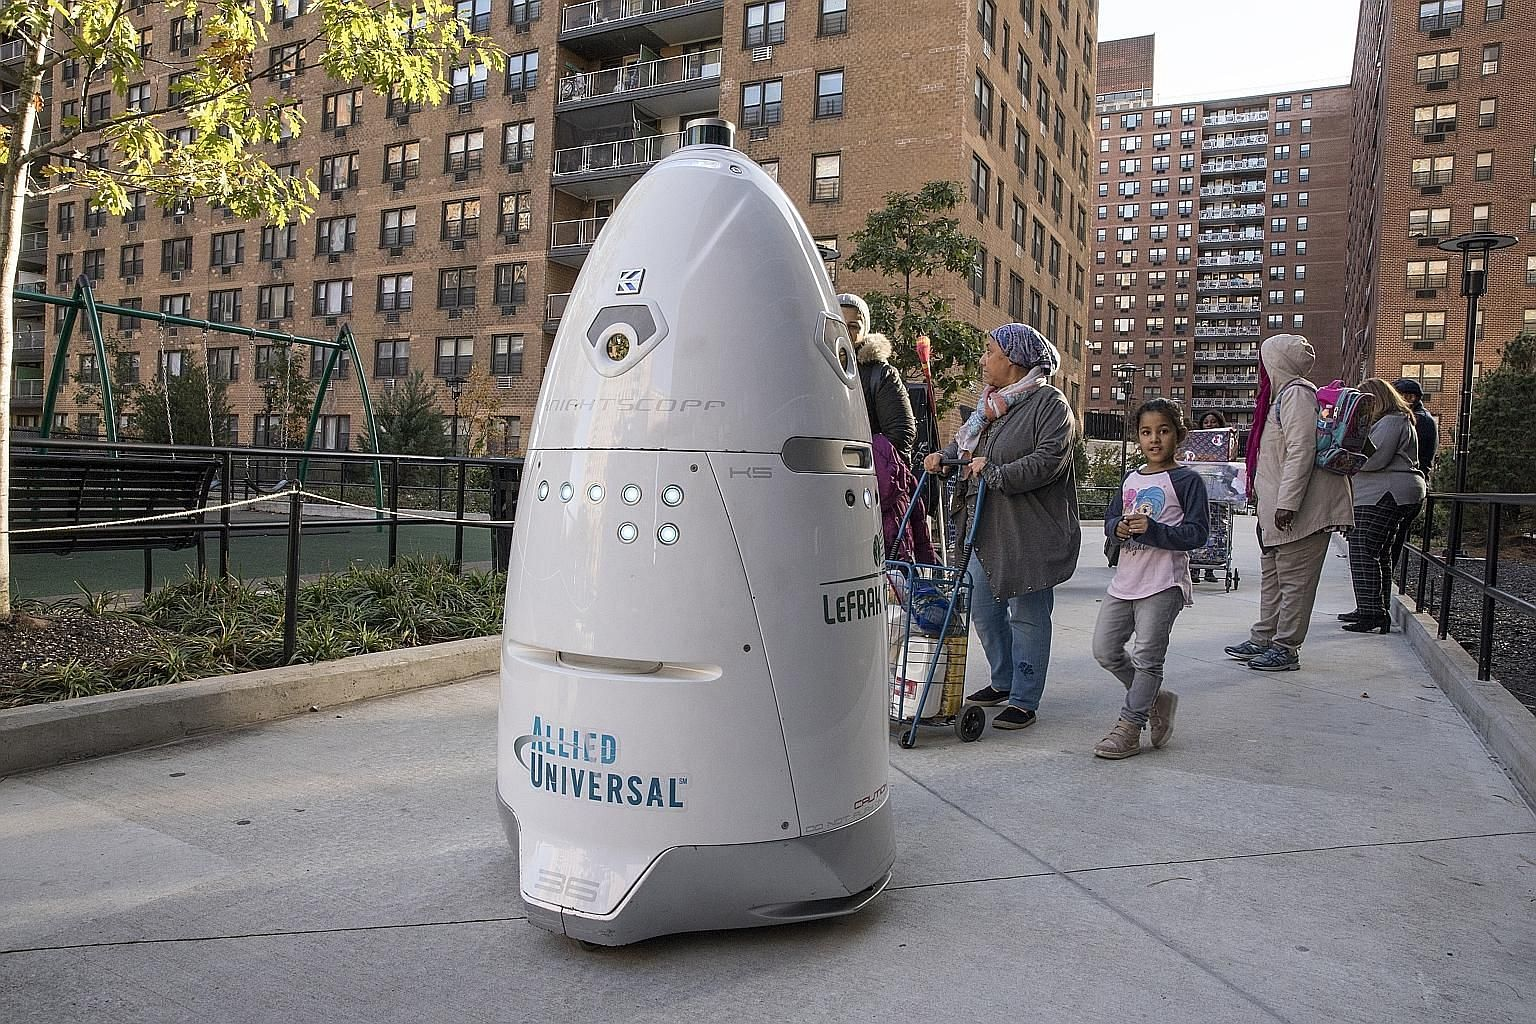 Rosie the robot ambles through the grounds of LeFrak City, a housing complex in Queens, New York, acting as an extra set of eyes for the security team.